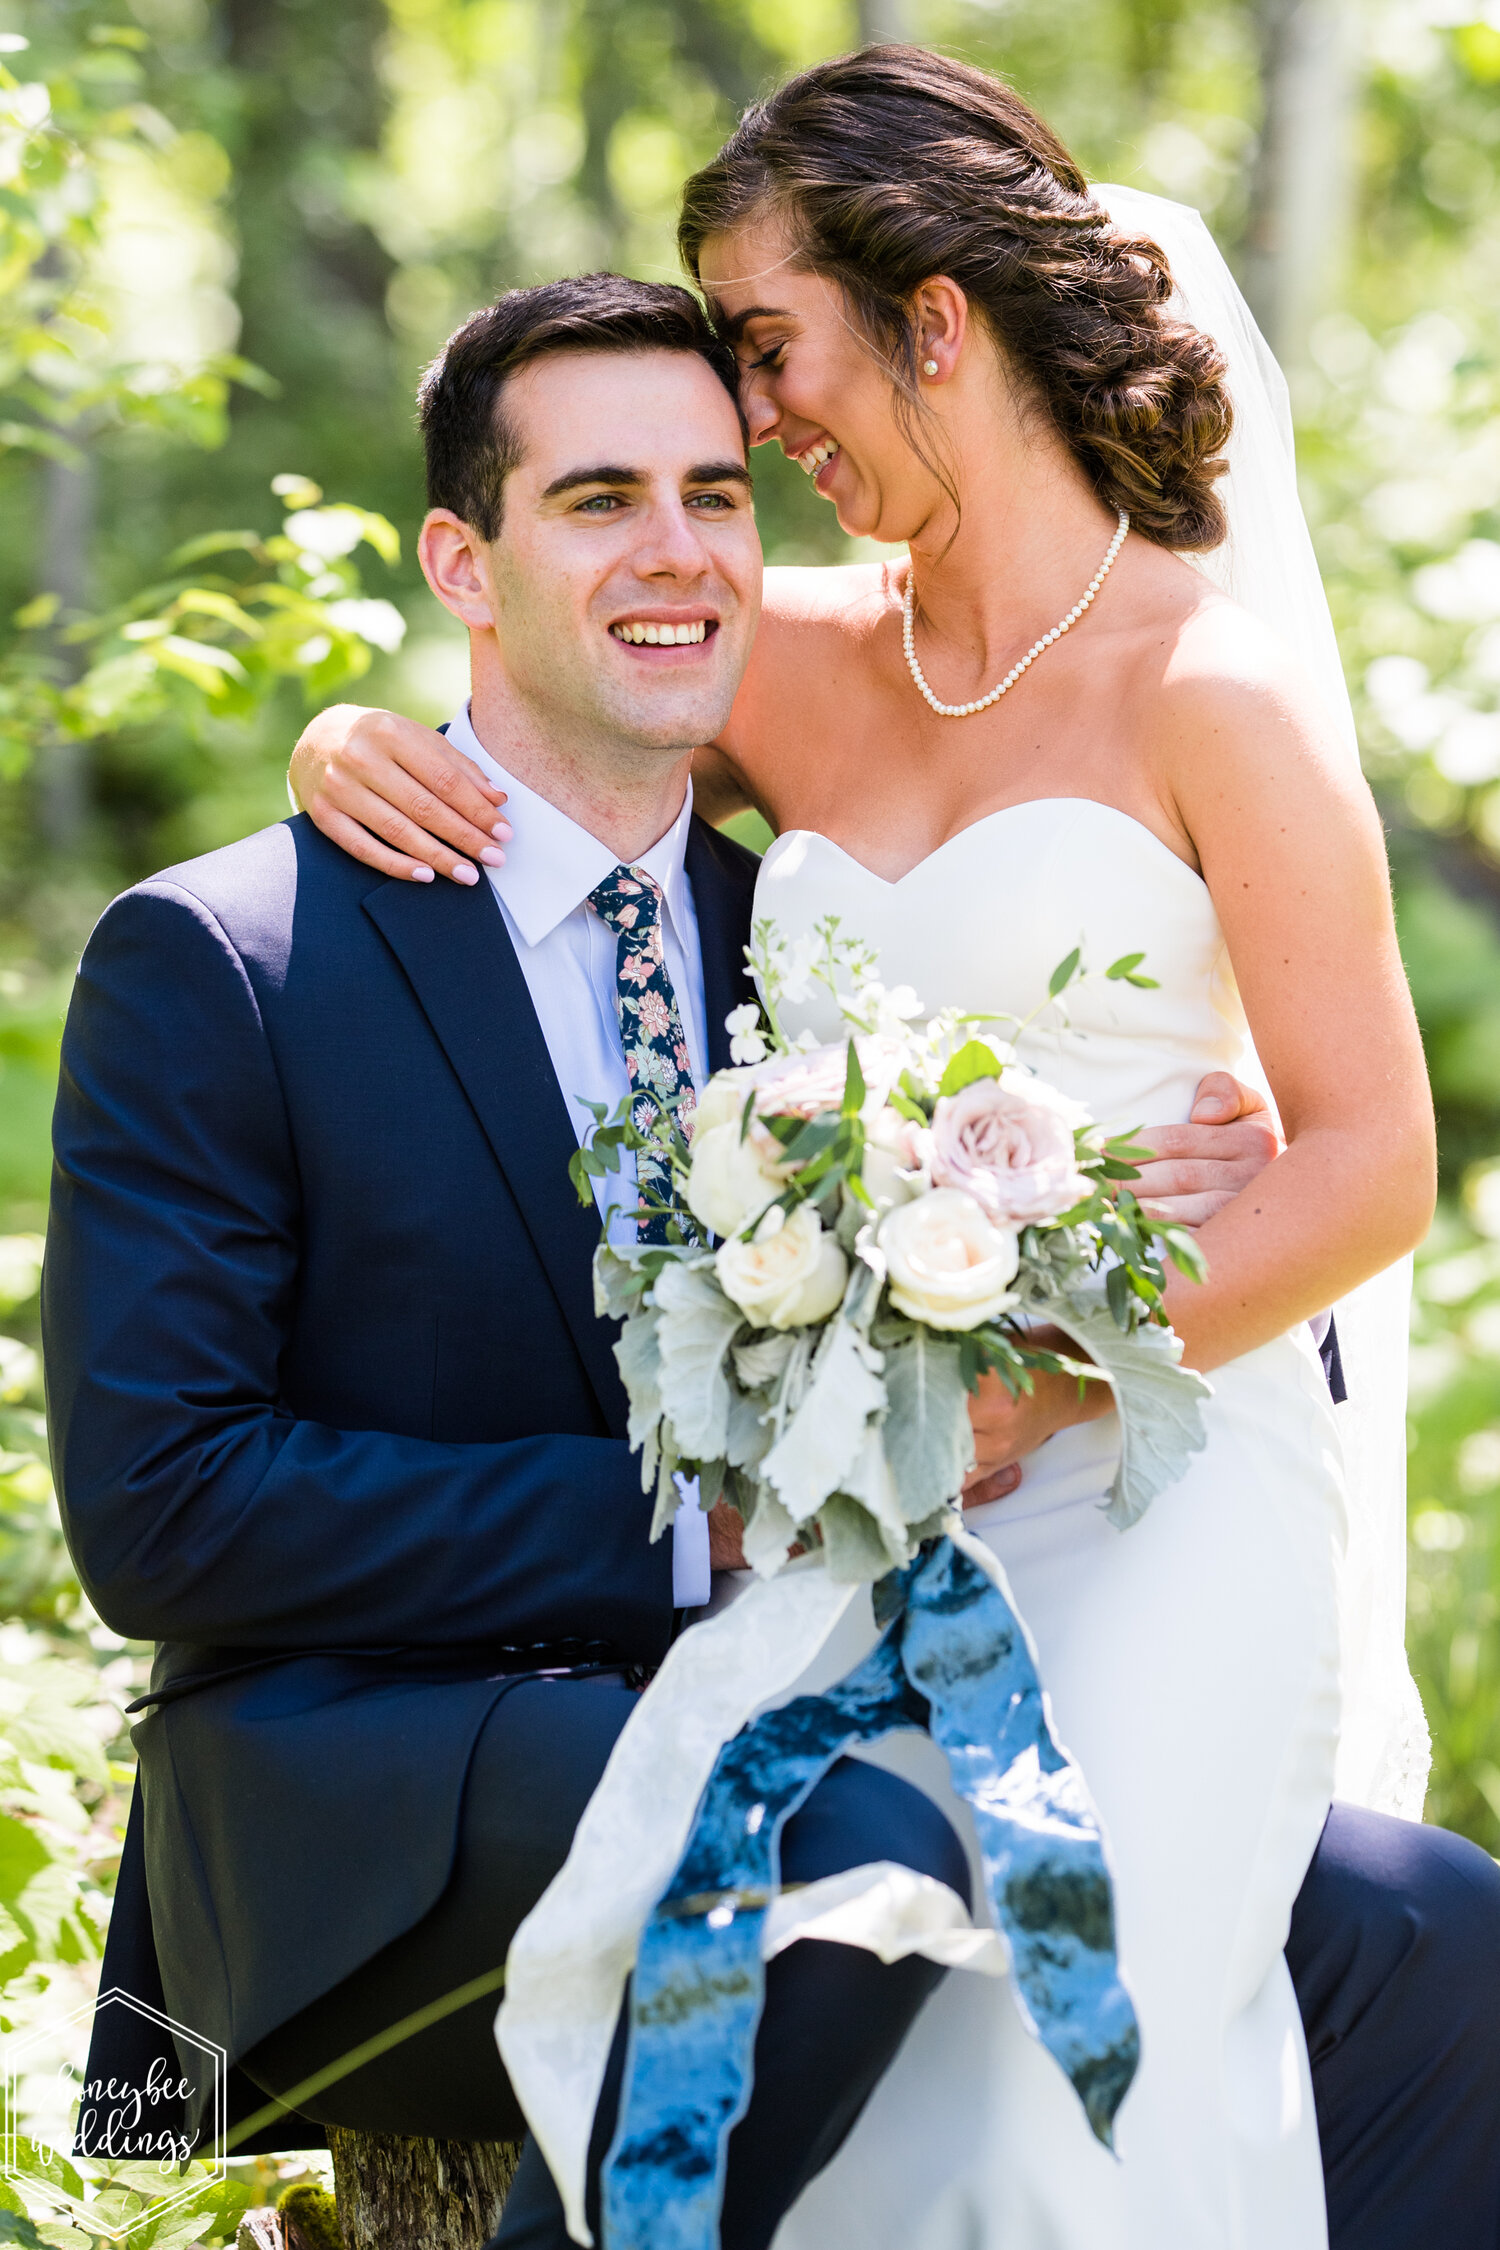 029Glacier National Park Wedding_Glacier Outdoor Center_Honeybee Weddings_Anna & Seth_July 21, 2019-816.jpg